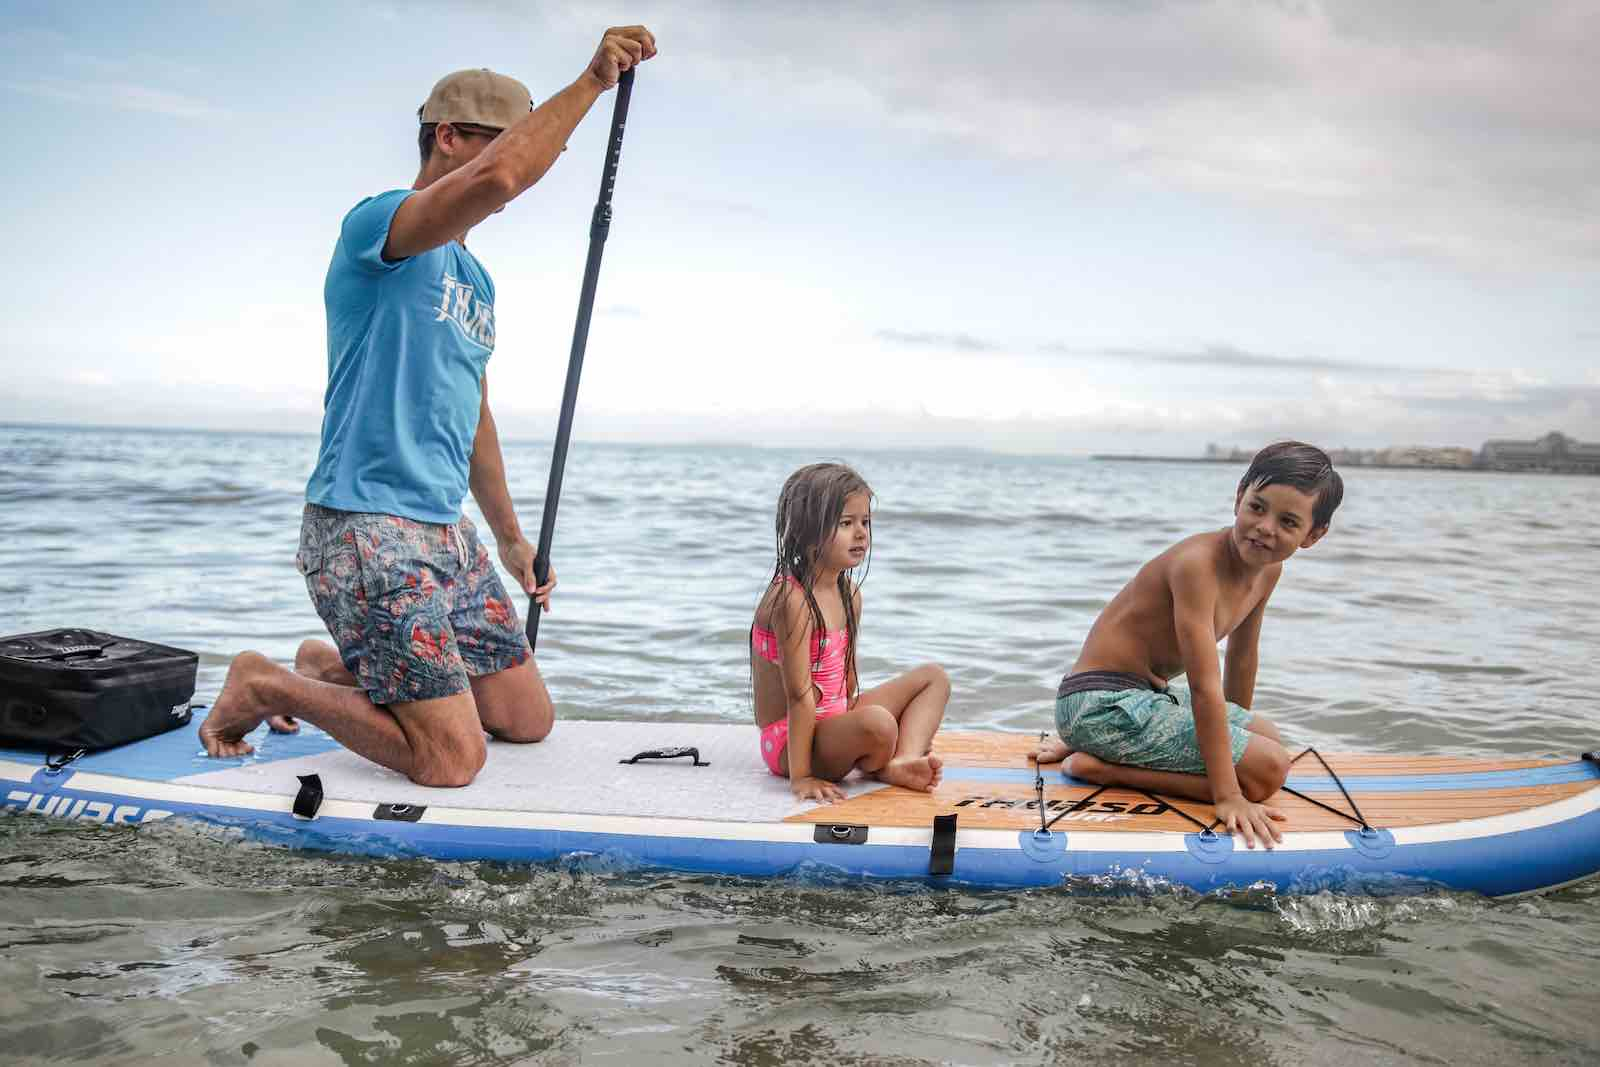 Paddle Board Technique – How to Paddle Board on Your Knees